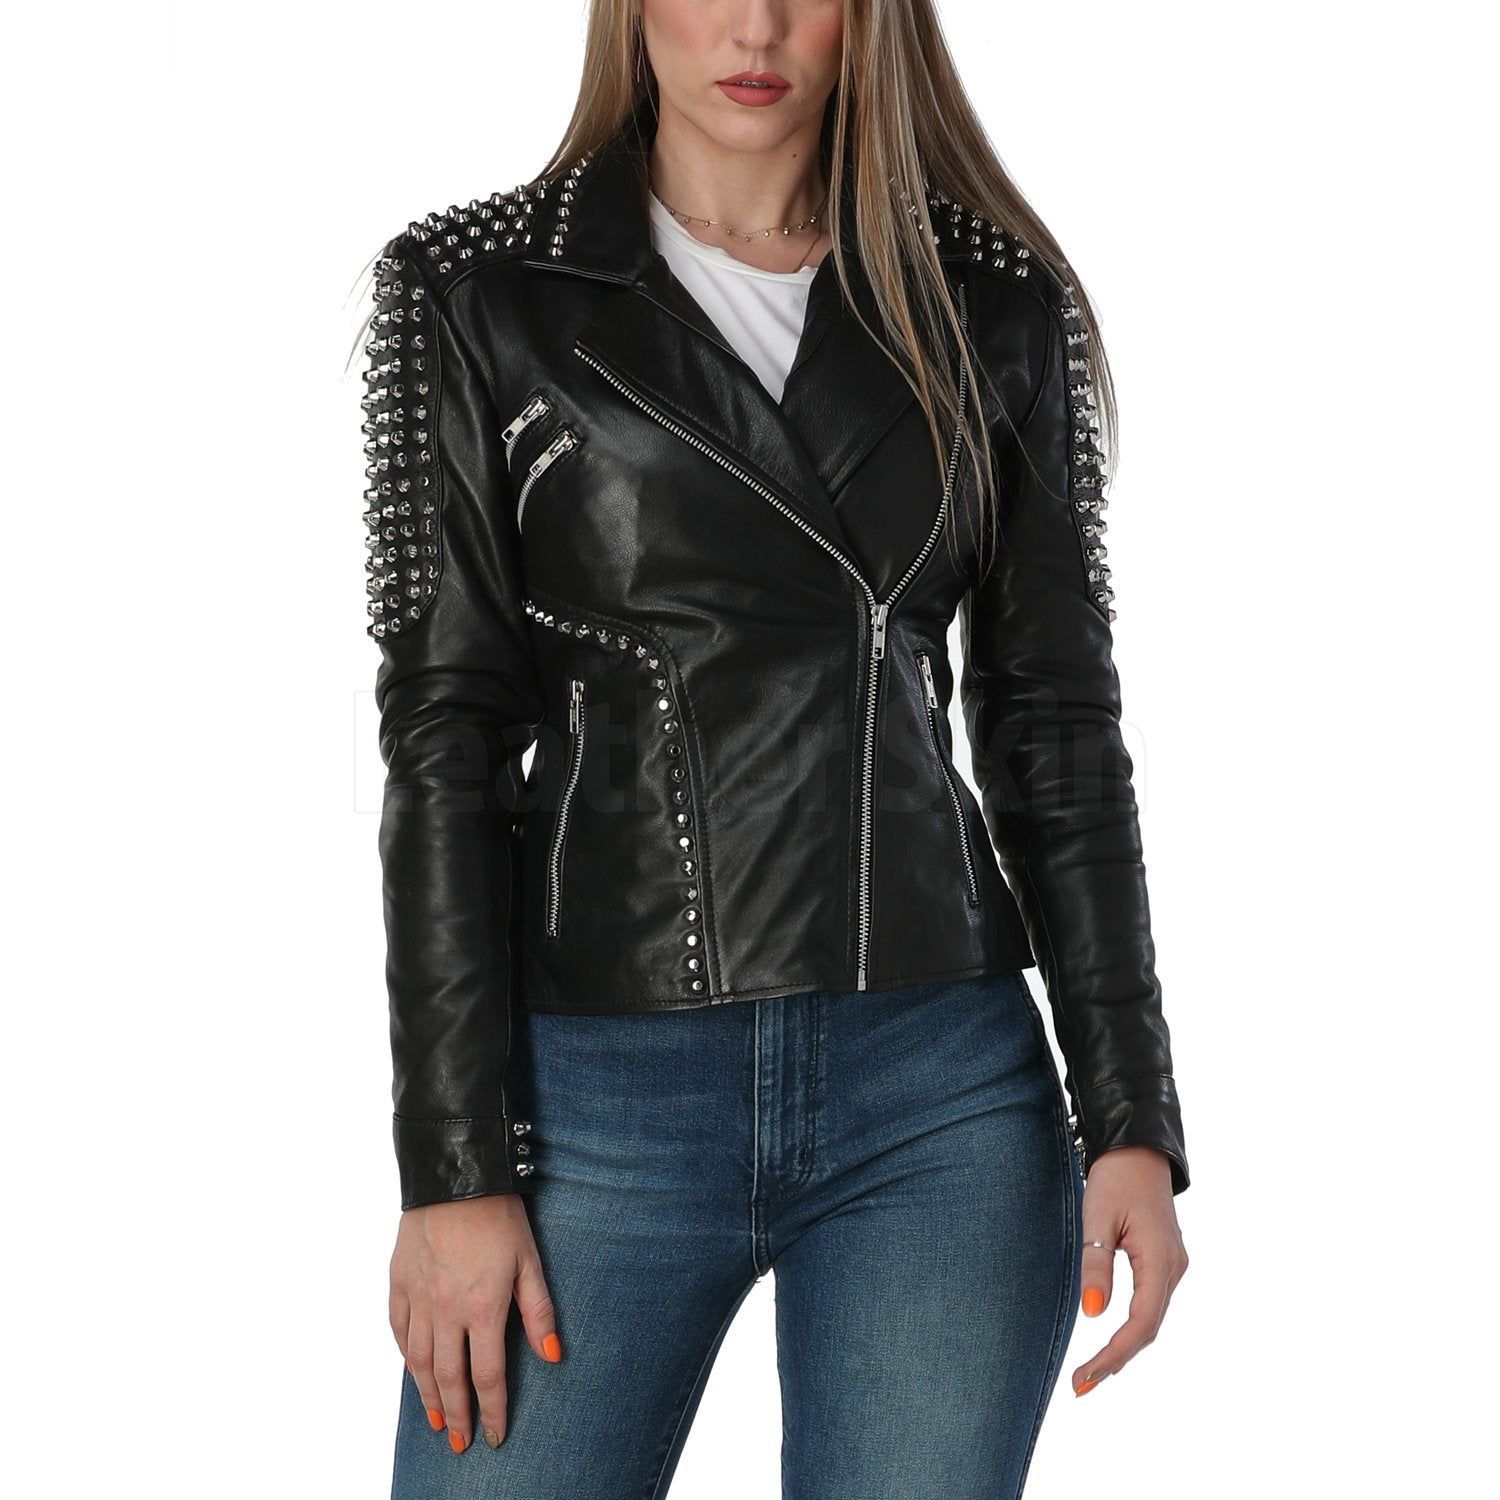 Cutting Edge Black Spike Studded Leather Jacket